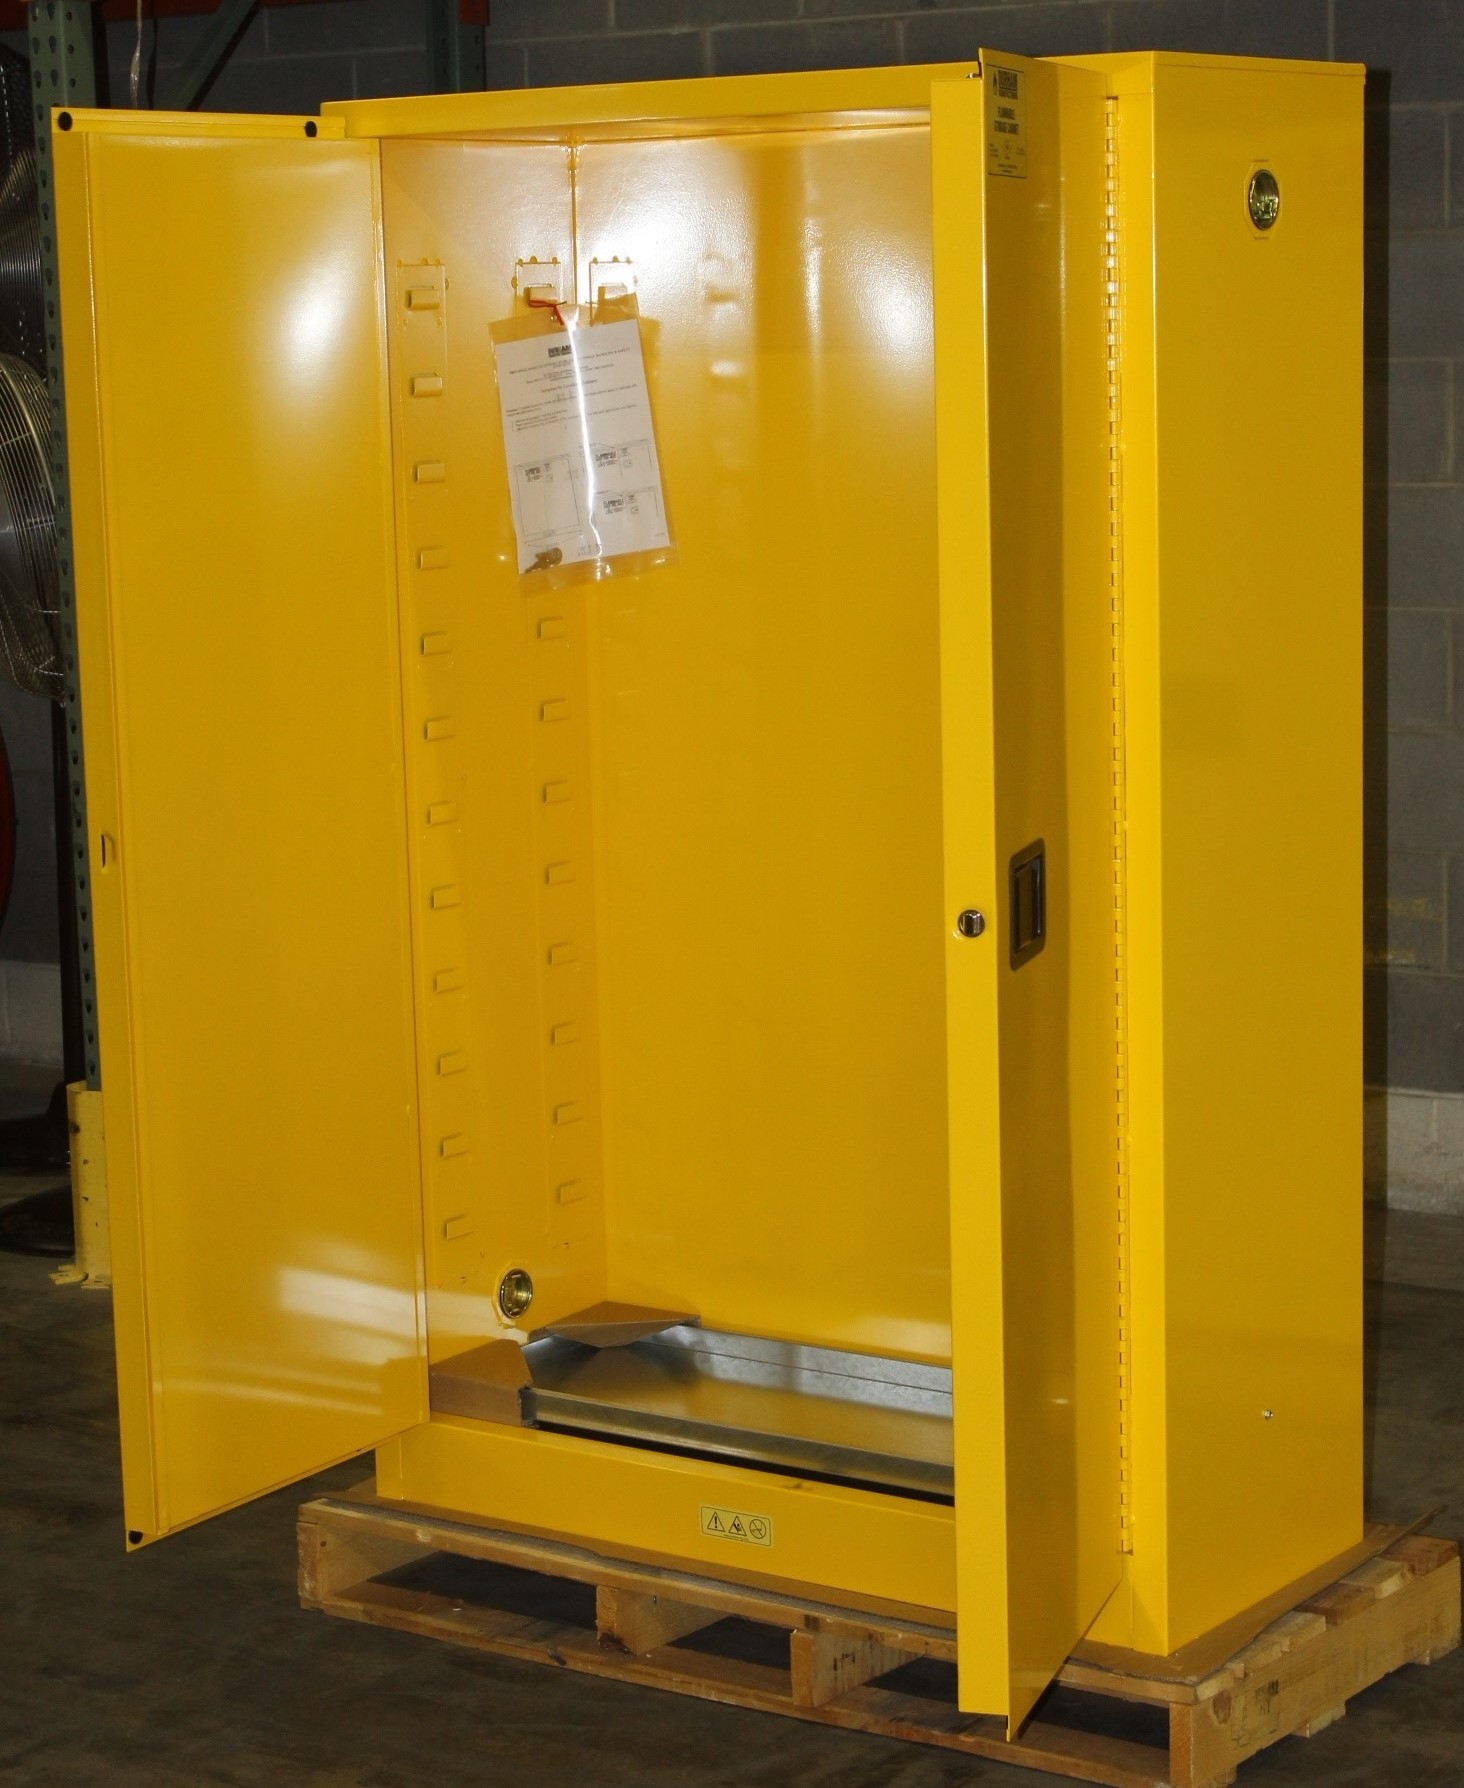 Lot 7 - 45 GALLONS FLAMMABLE SAFETY STORAGE CABINET, NEW